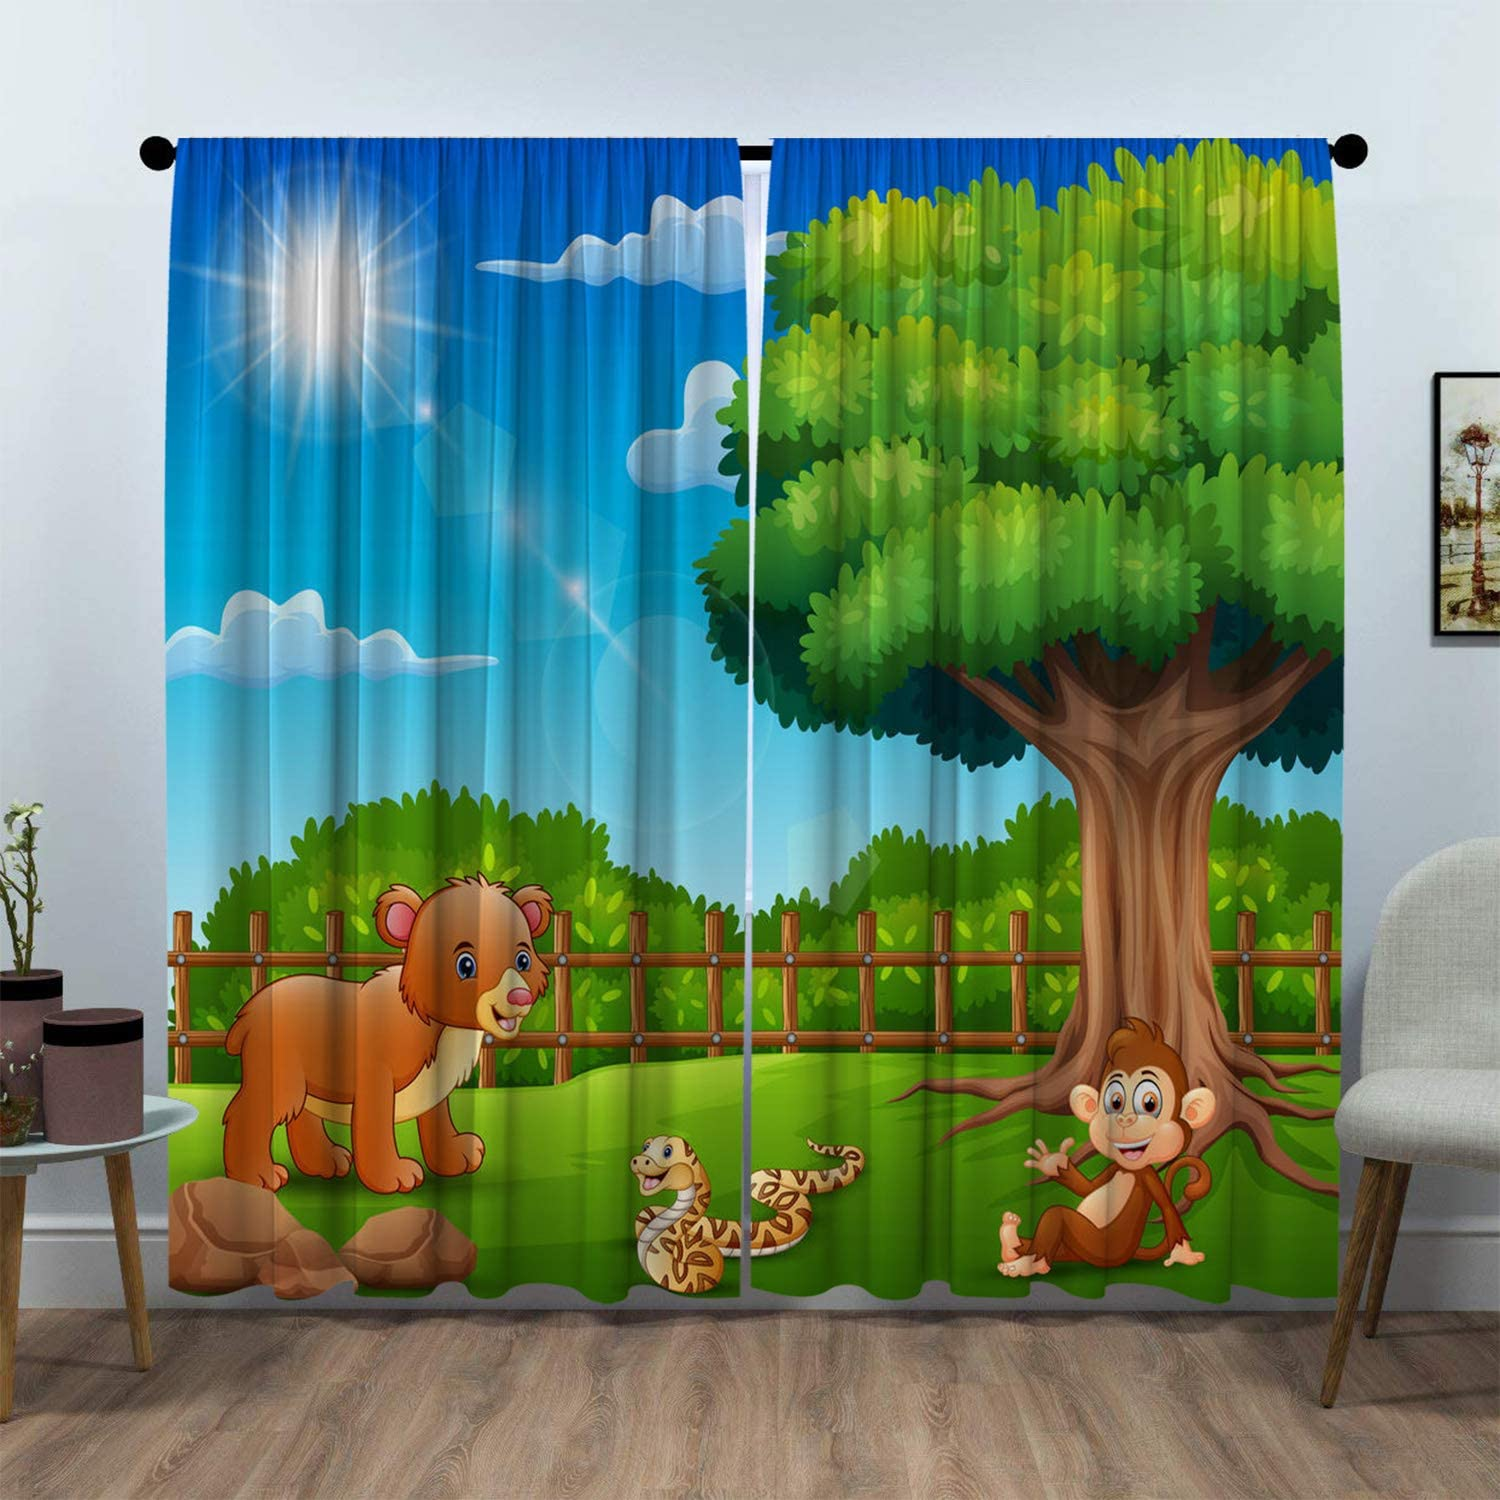 SeptSonne Kids Room Window Curtain Panels Drapes Animal Vector is to Enjoy Nature by Cage draps for Kids Room Artwork Customized Curtains 72